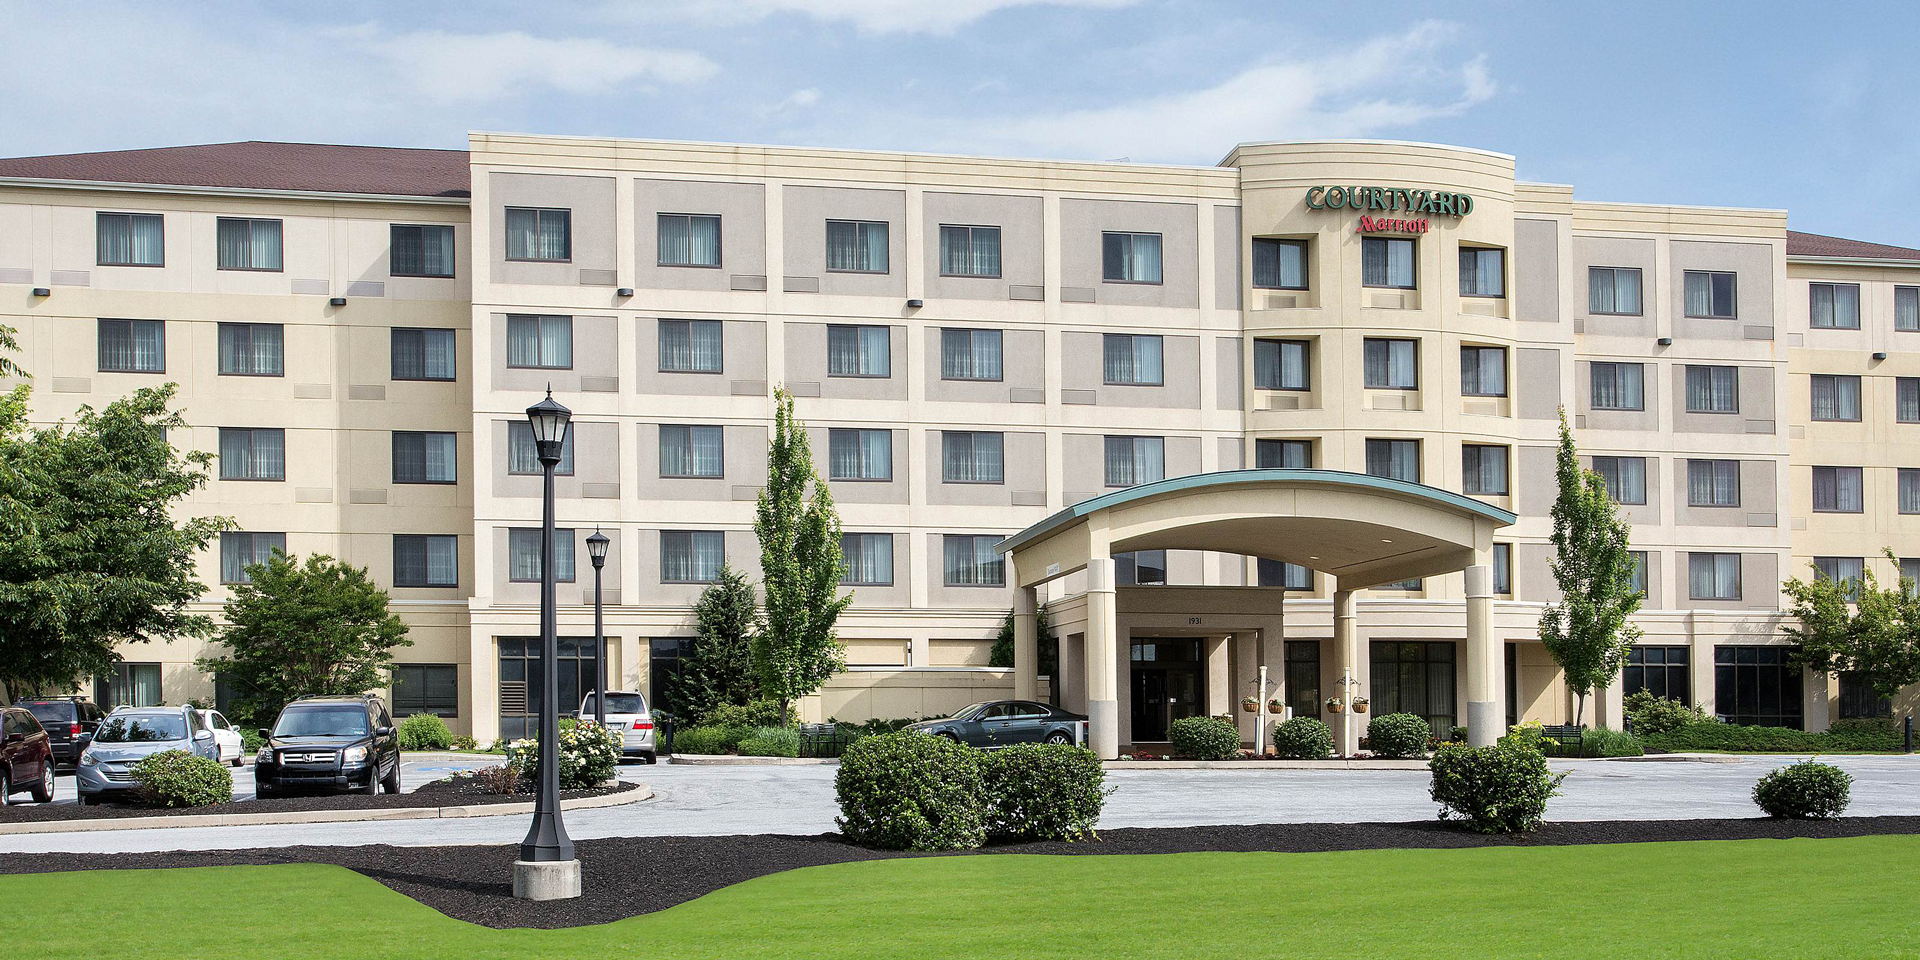 Marriott to build its first fully solar-powered hotel in the United States